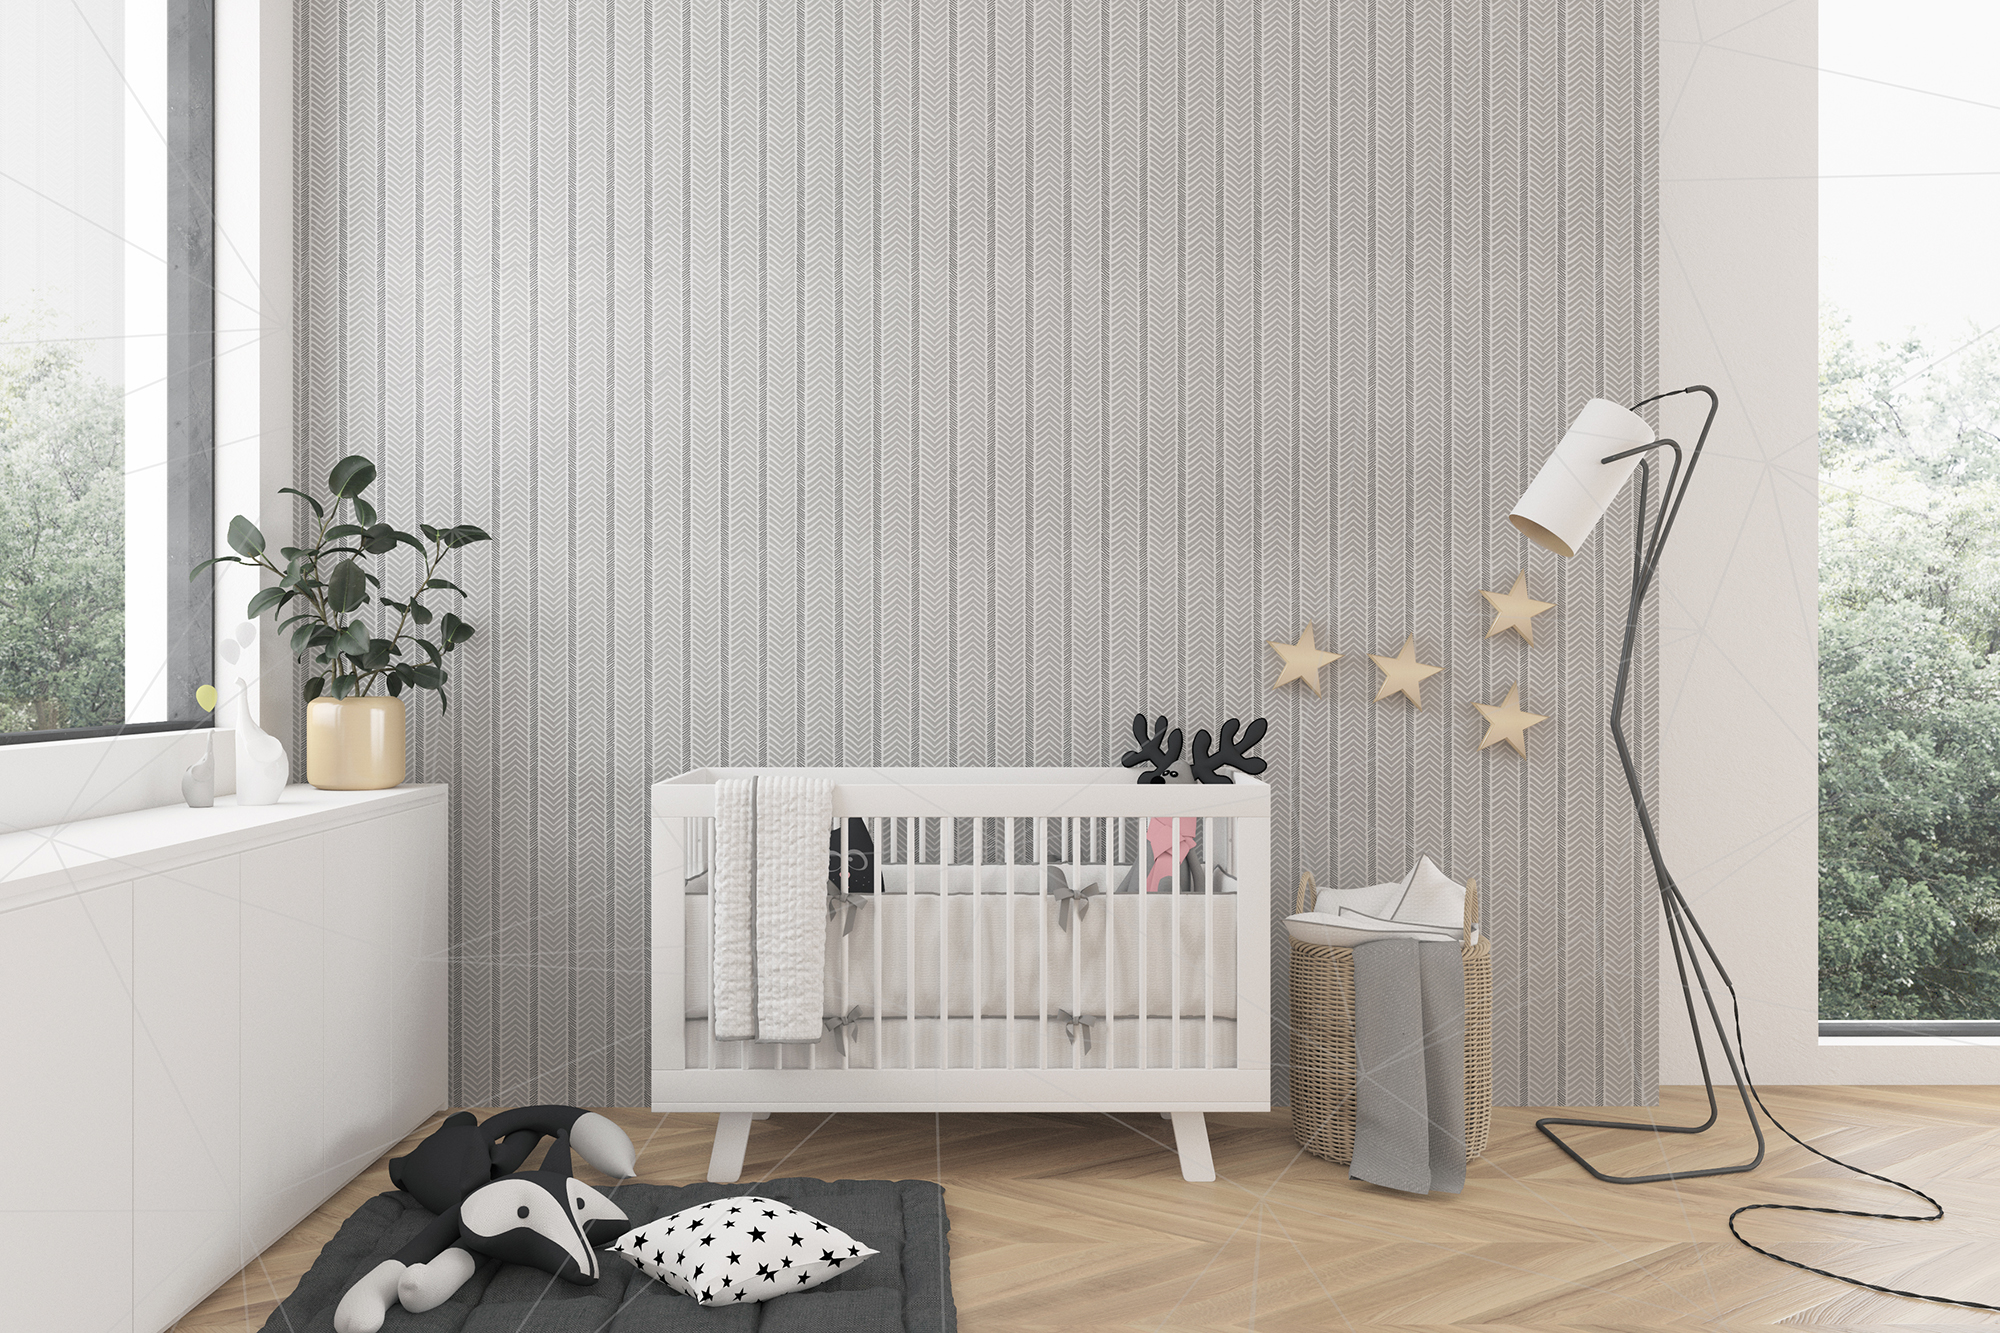 Nursery interior bundle - 10 images 60 off example image 6